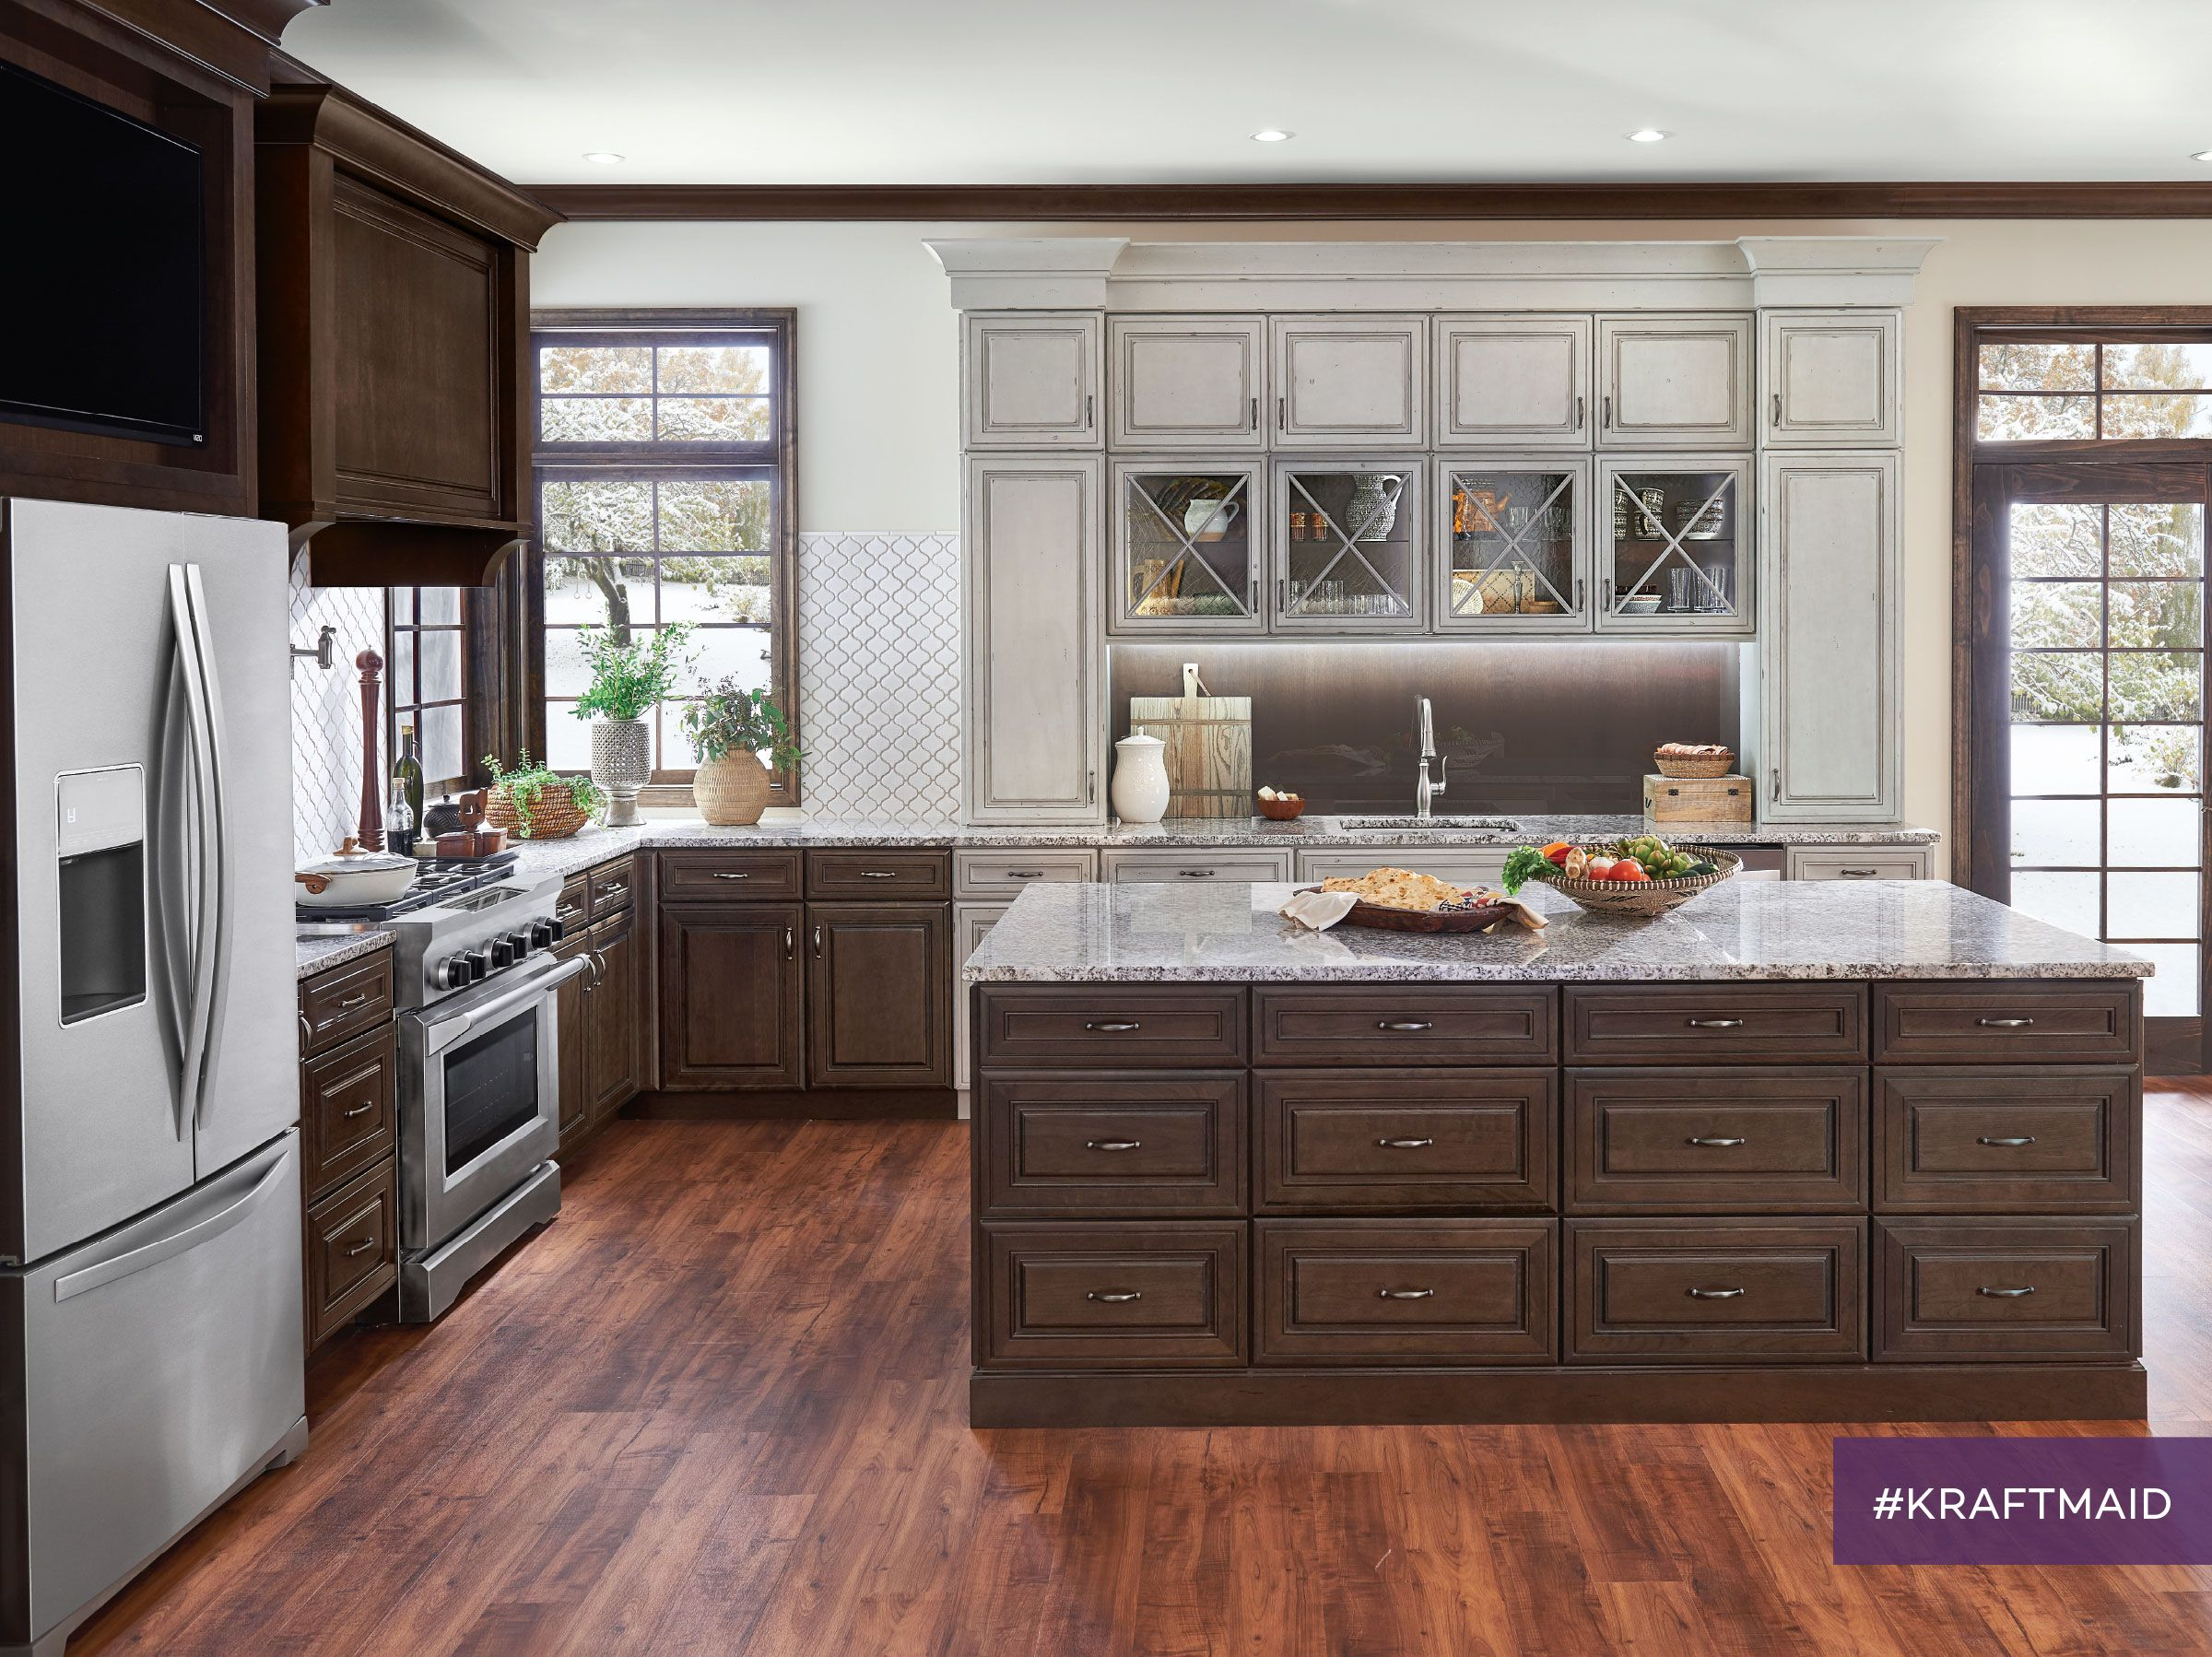 A Bigger Kitchen Island Means More Room For The Whole Family To Help This Island Features Kraftmaid Kitchens Kraftmaid Kitchen Cabinets Kitchen Cabinet Design